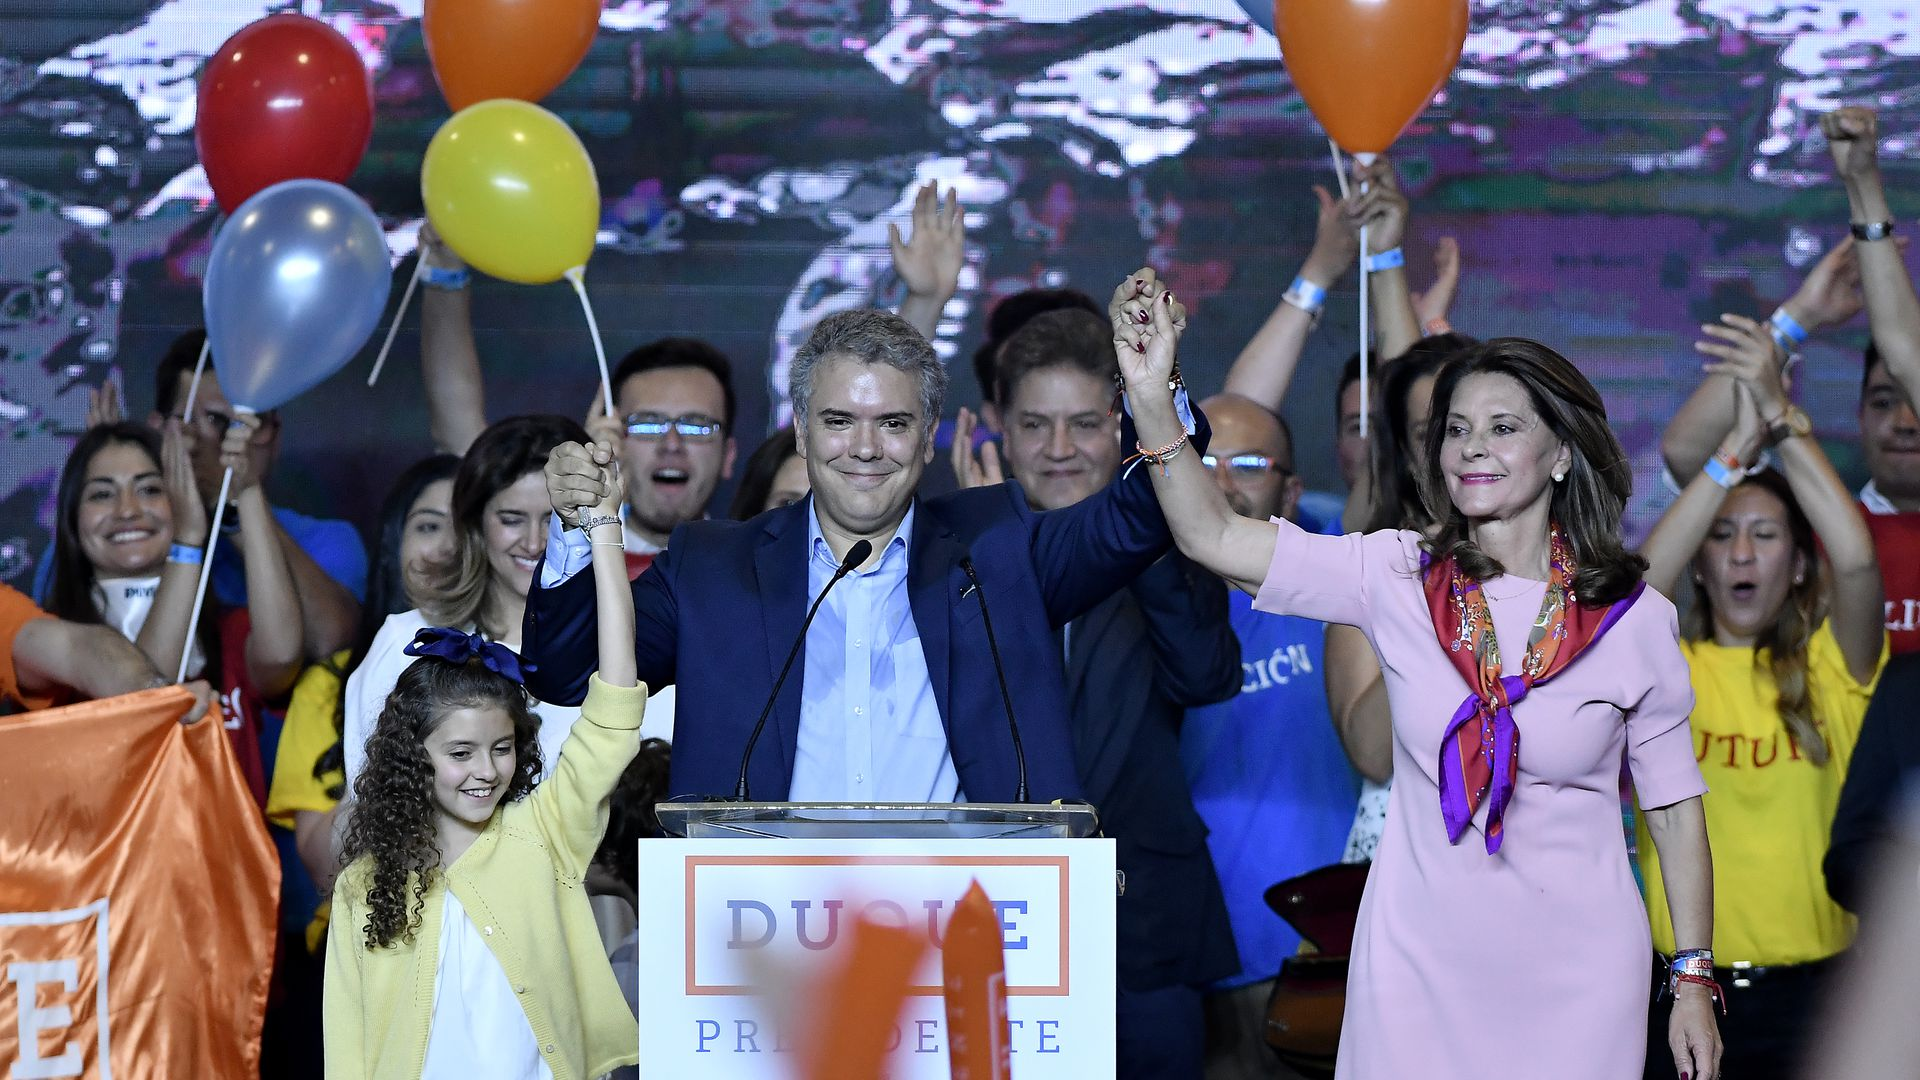 Ivan Duque, presidential candidate for the Centro Democratico party, celebrate after winning the first round Presidential Elections in Colombia on May 27, 2018, in Bogota, Colombia.